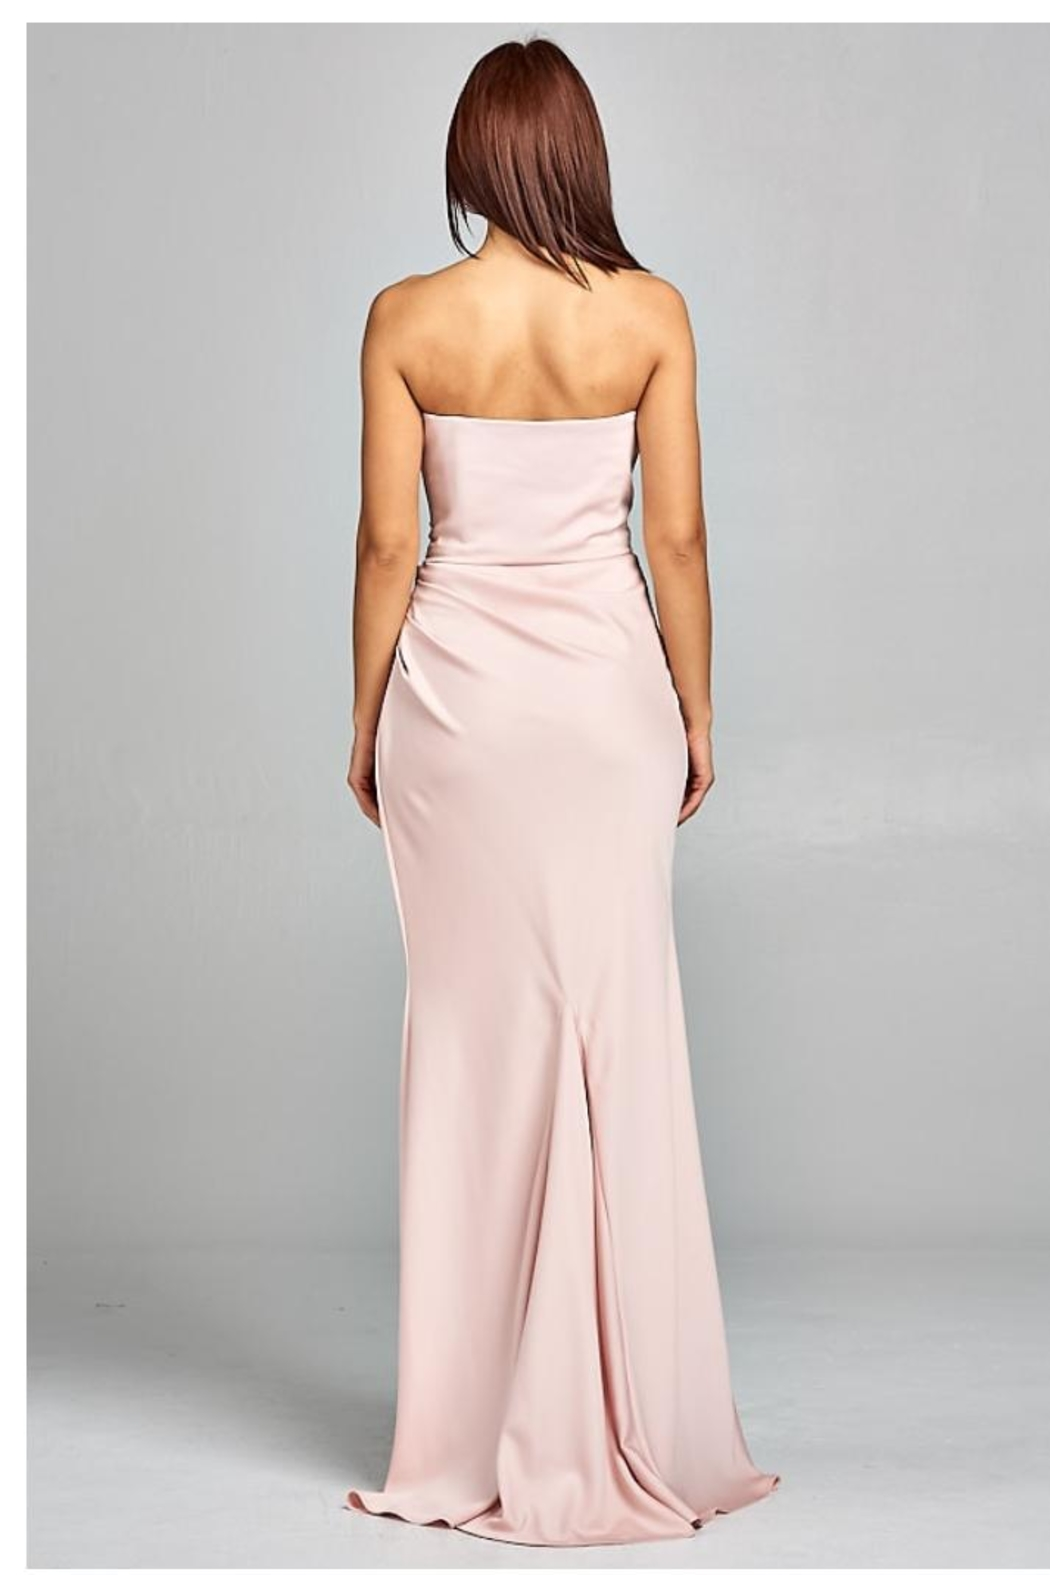 AG Studio Blush Strapless Gown - Side Cropped Image